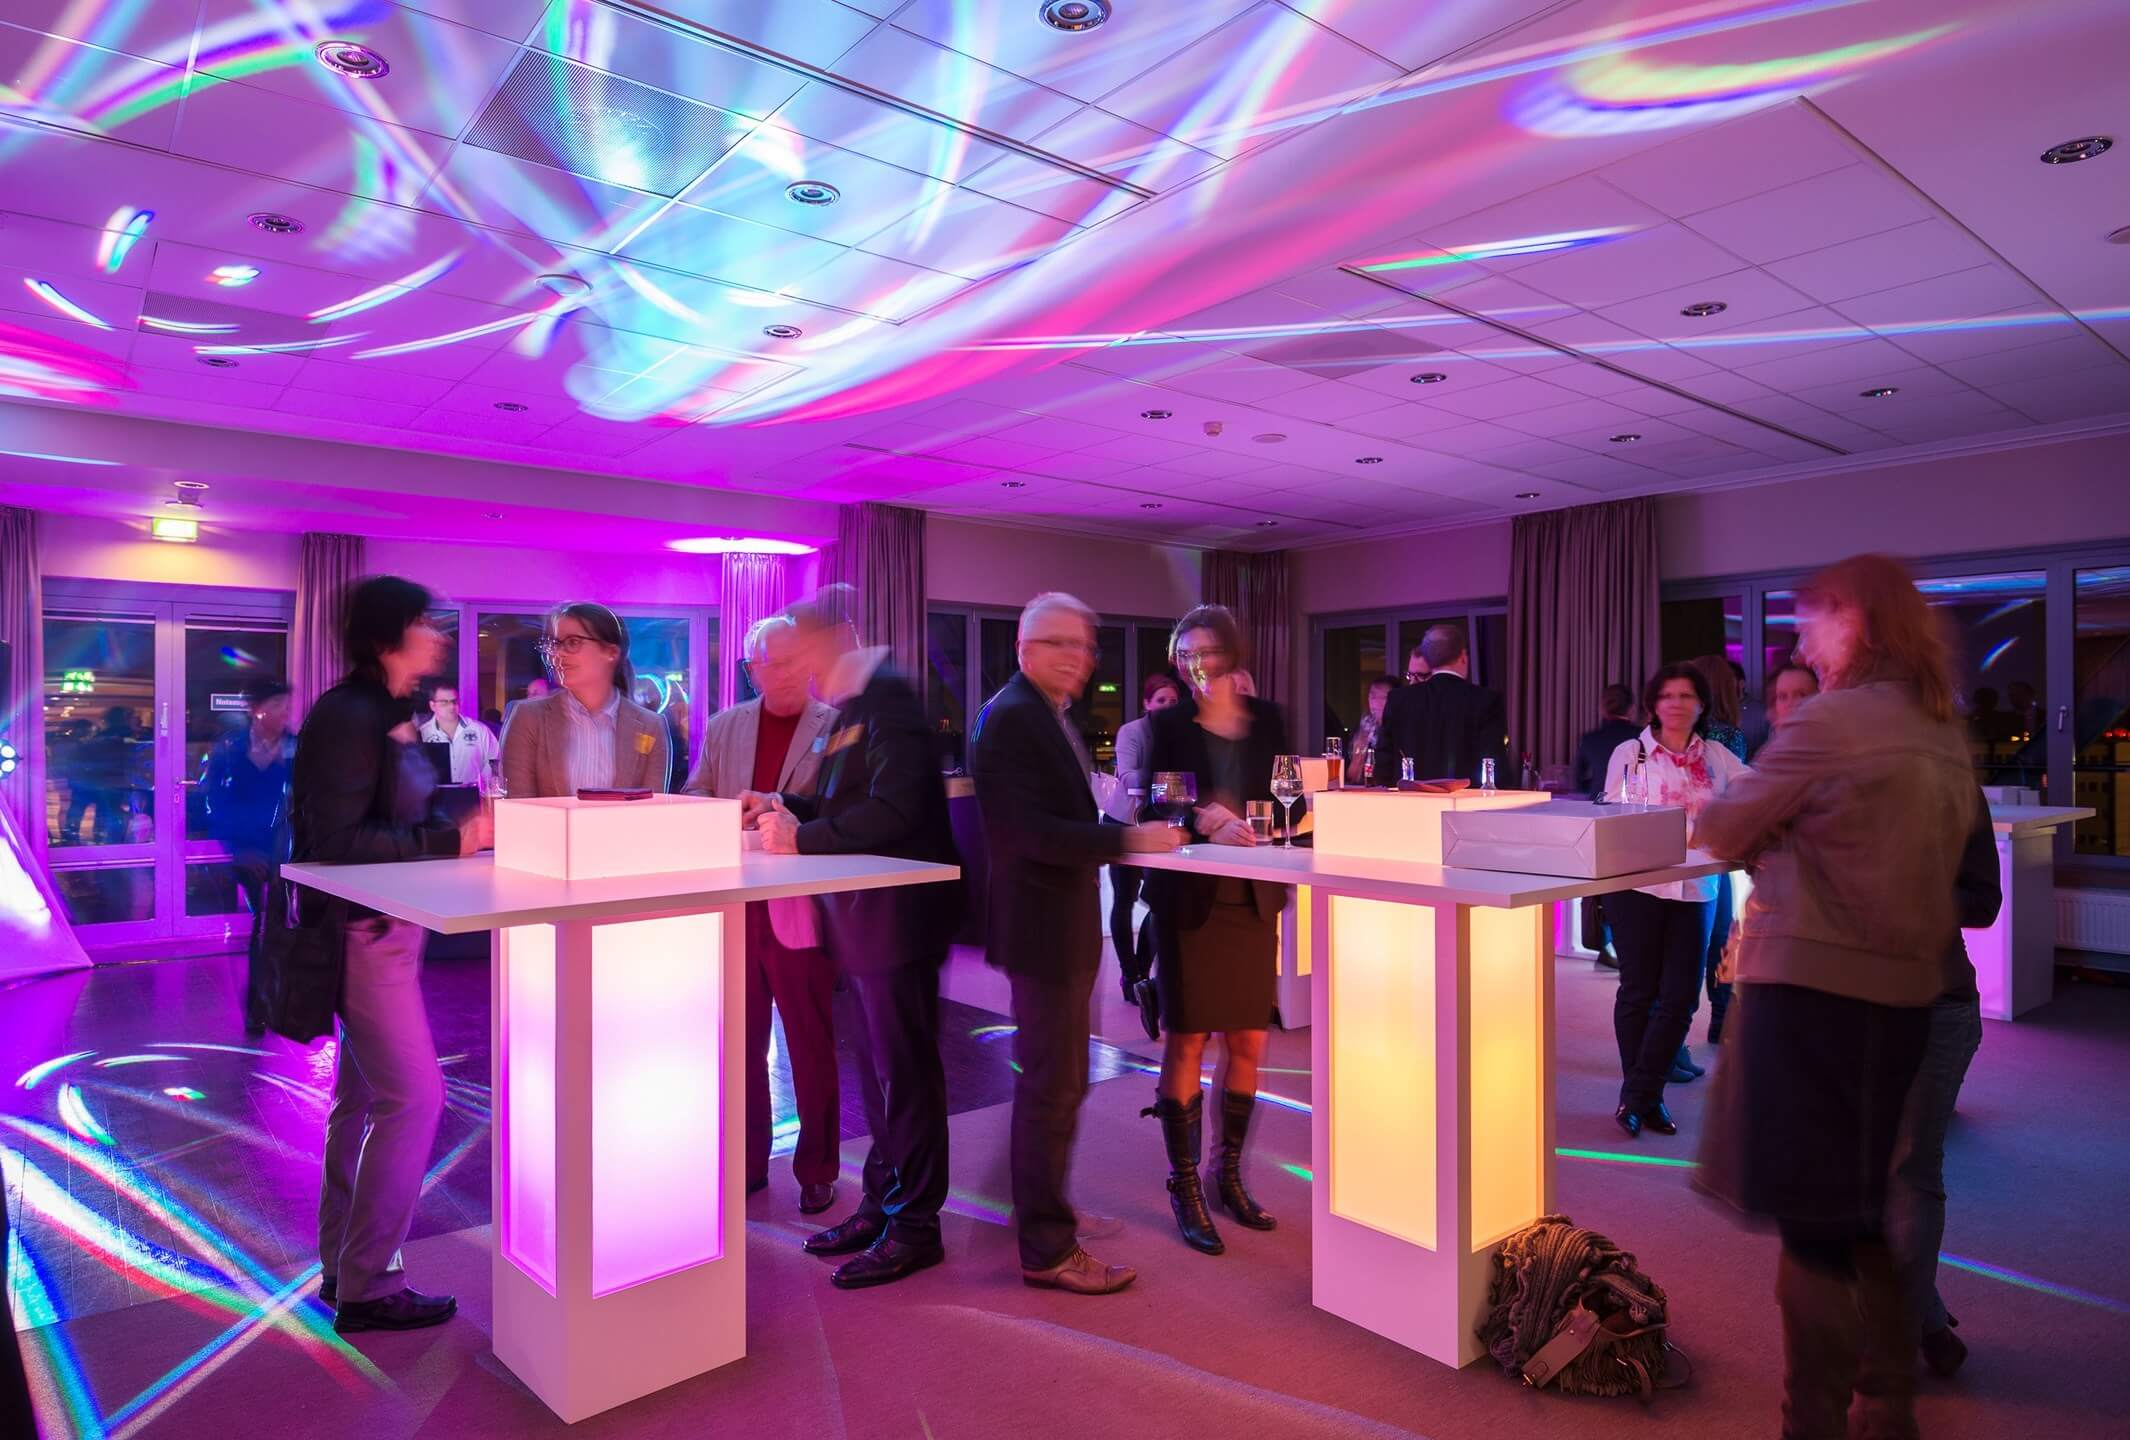 Event with dance floor | Function room Lilienthal in the ATLANTIC Hotel Airport Bremen